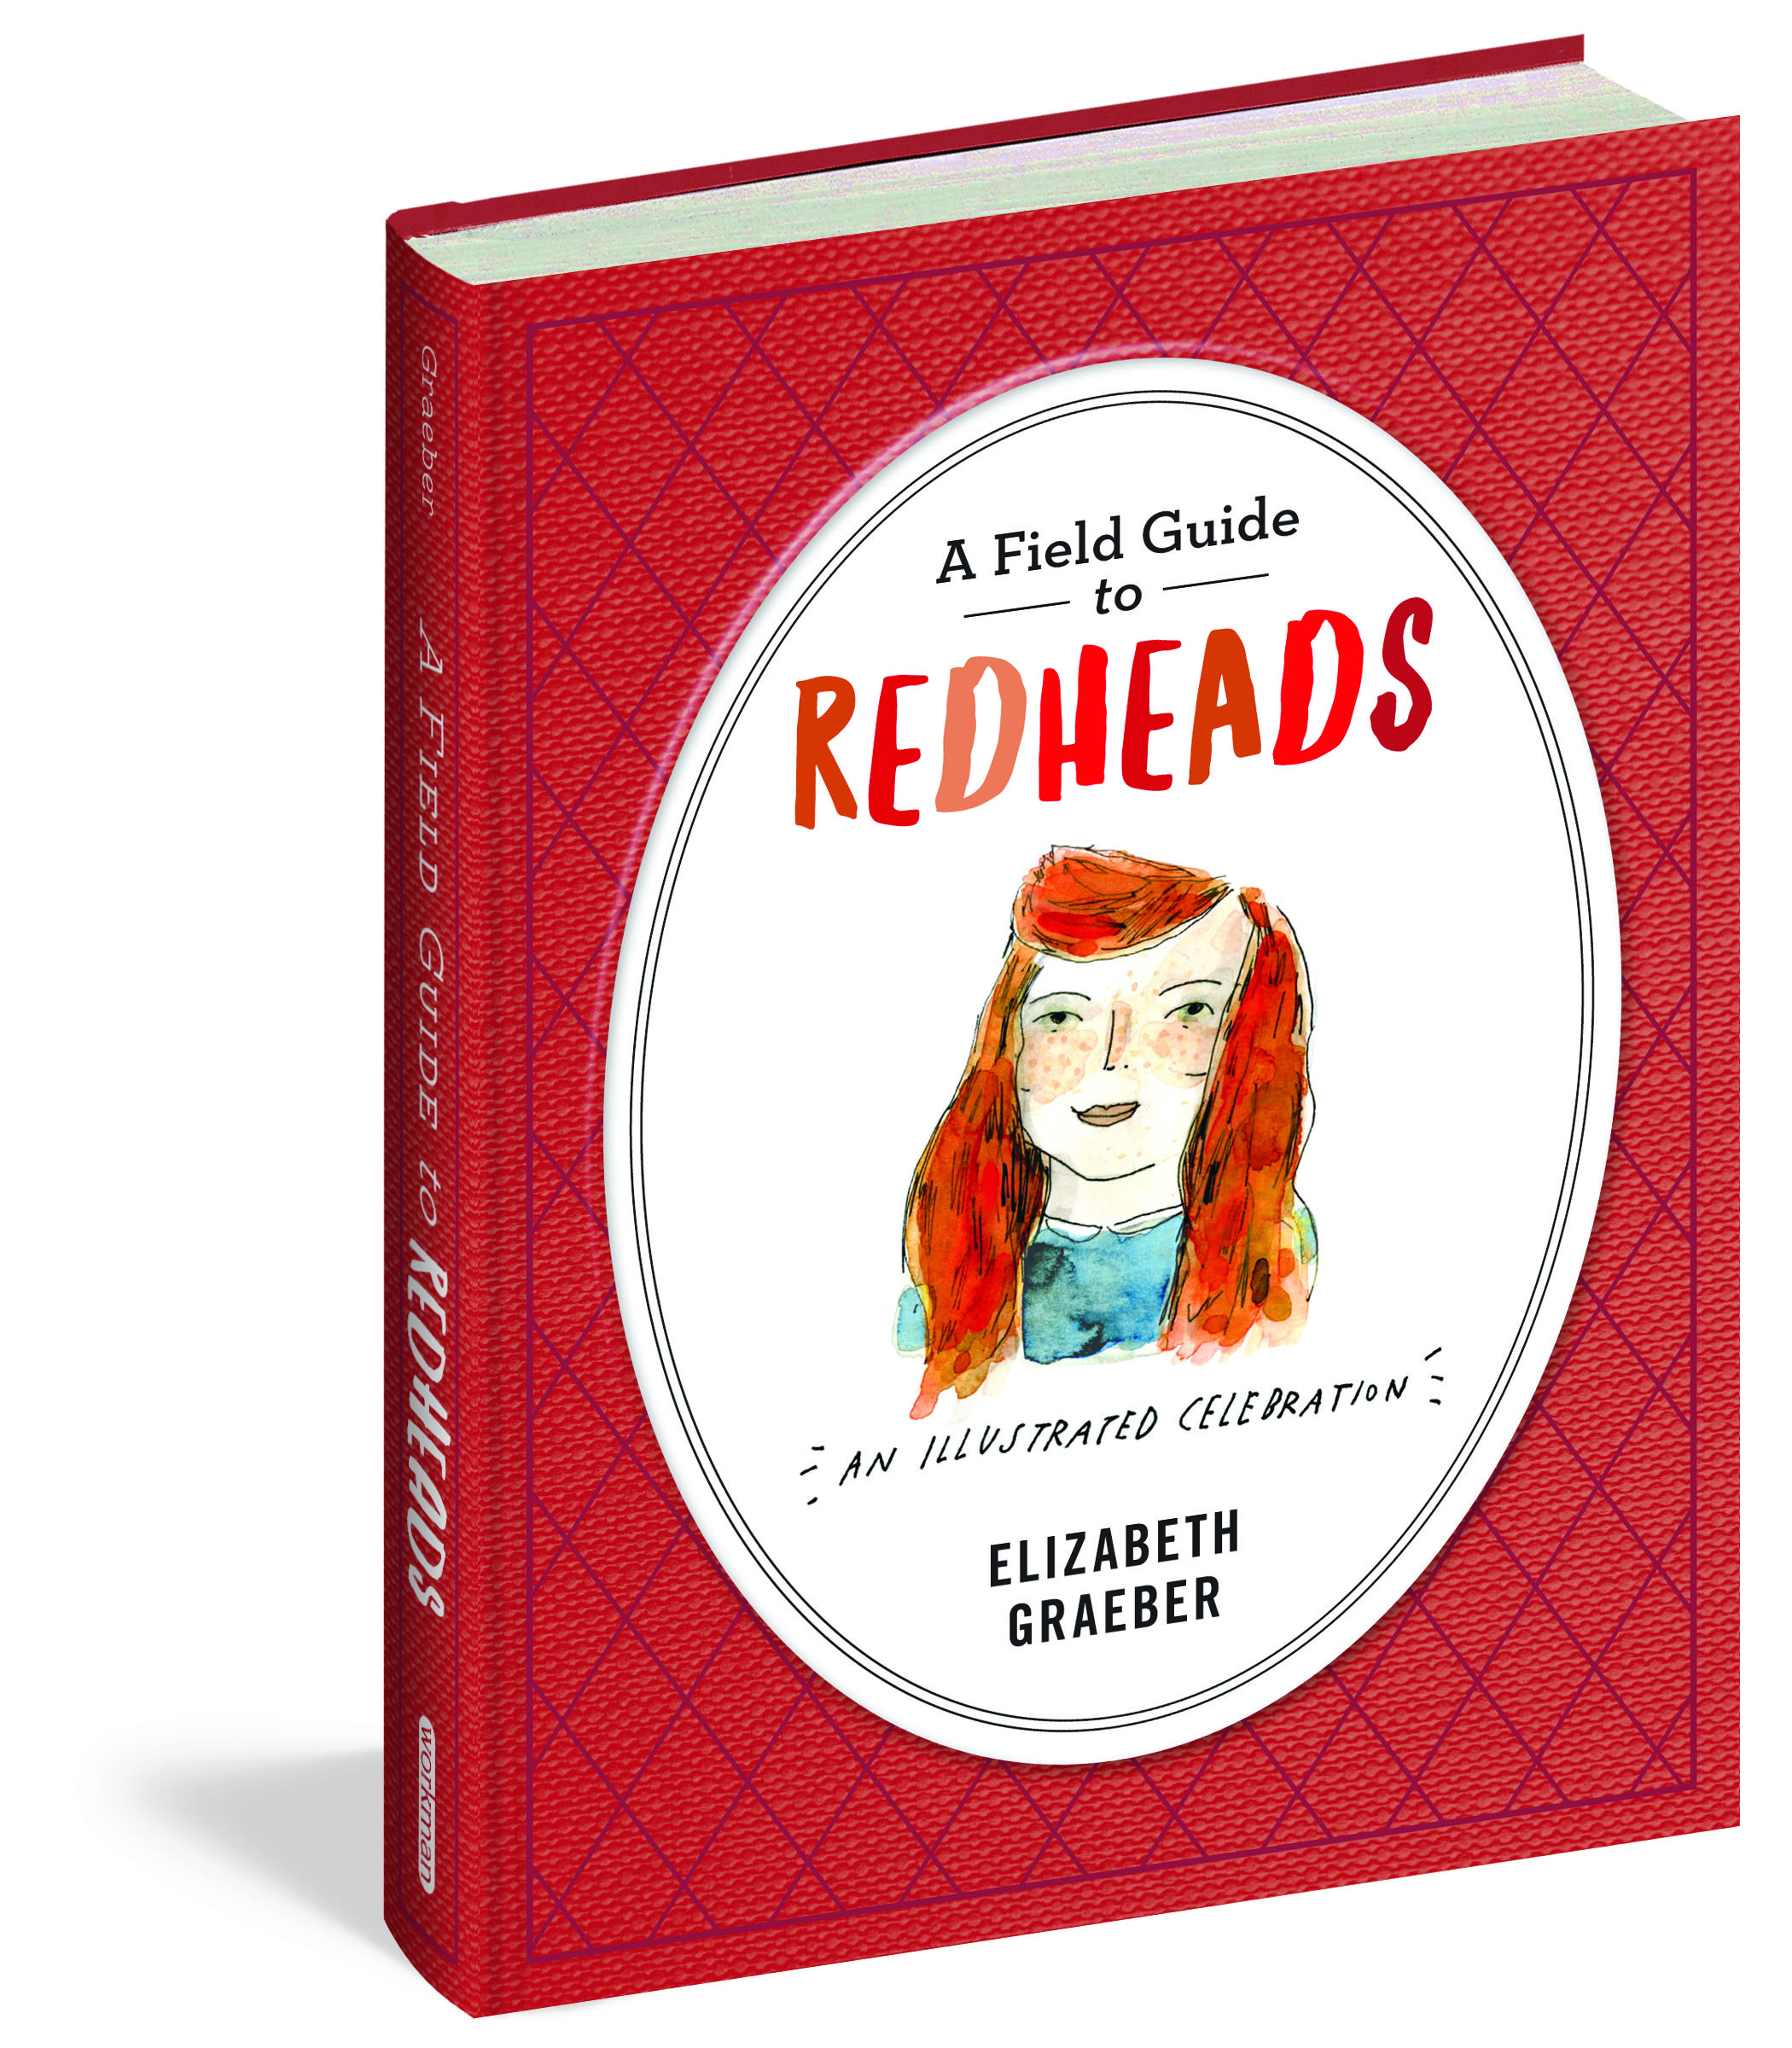 Field Guide To Redheads.jpg